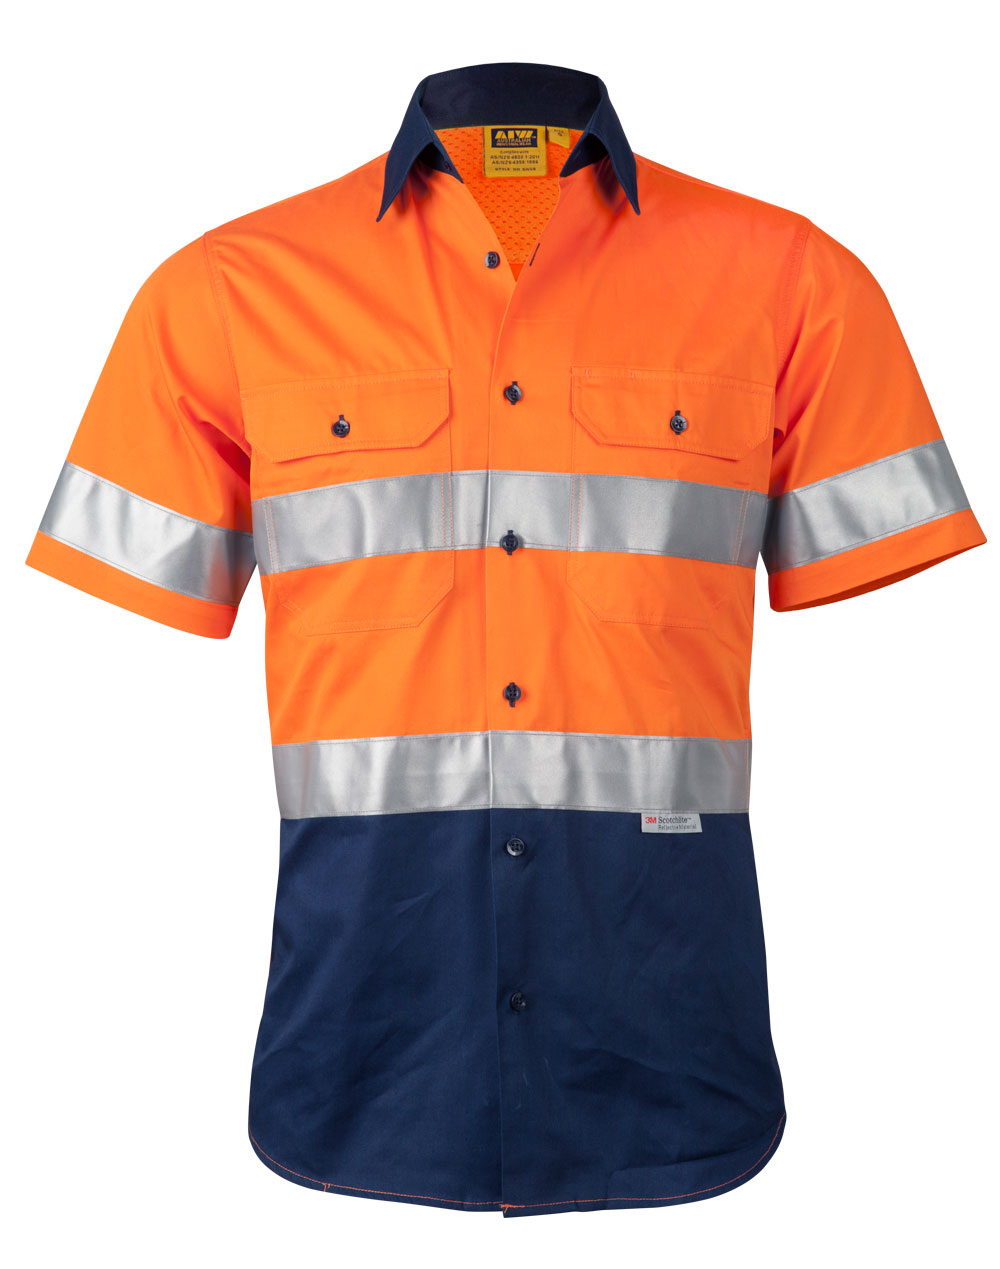 Security & Protection Orange Work Reflective Jacket Safety Mesh Vest With 3m Tape Fancy Colours Workplace Safety Supplies